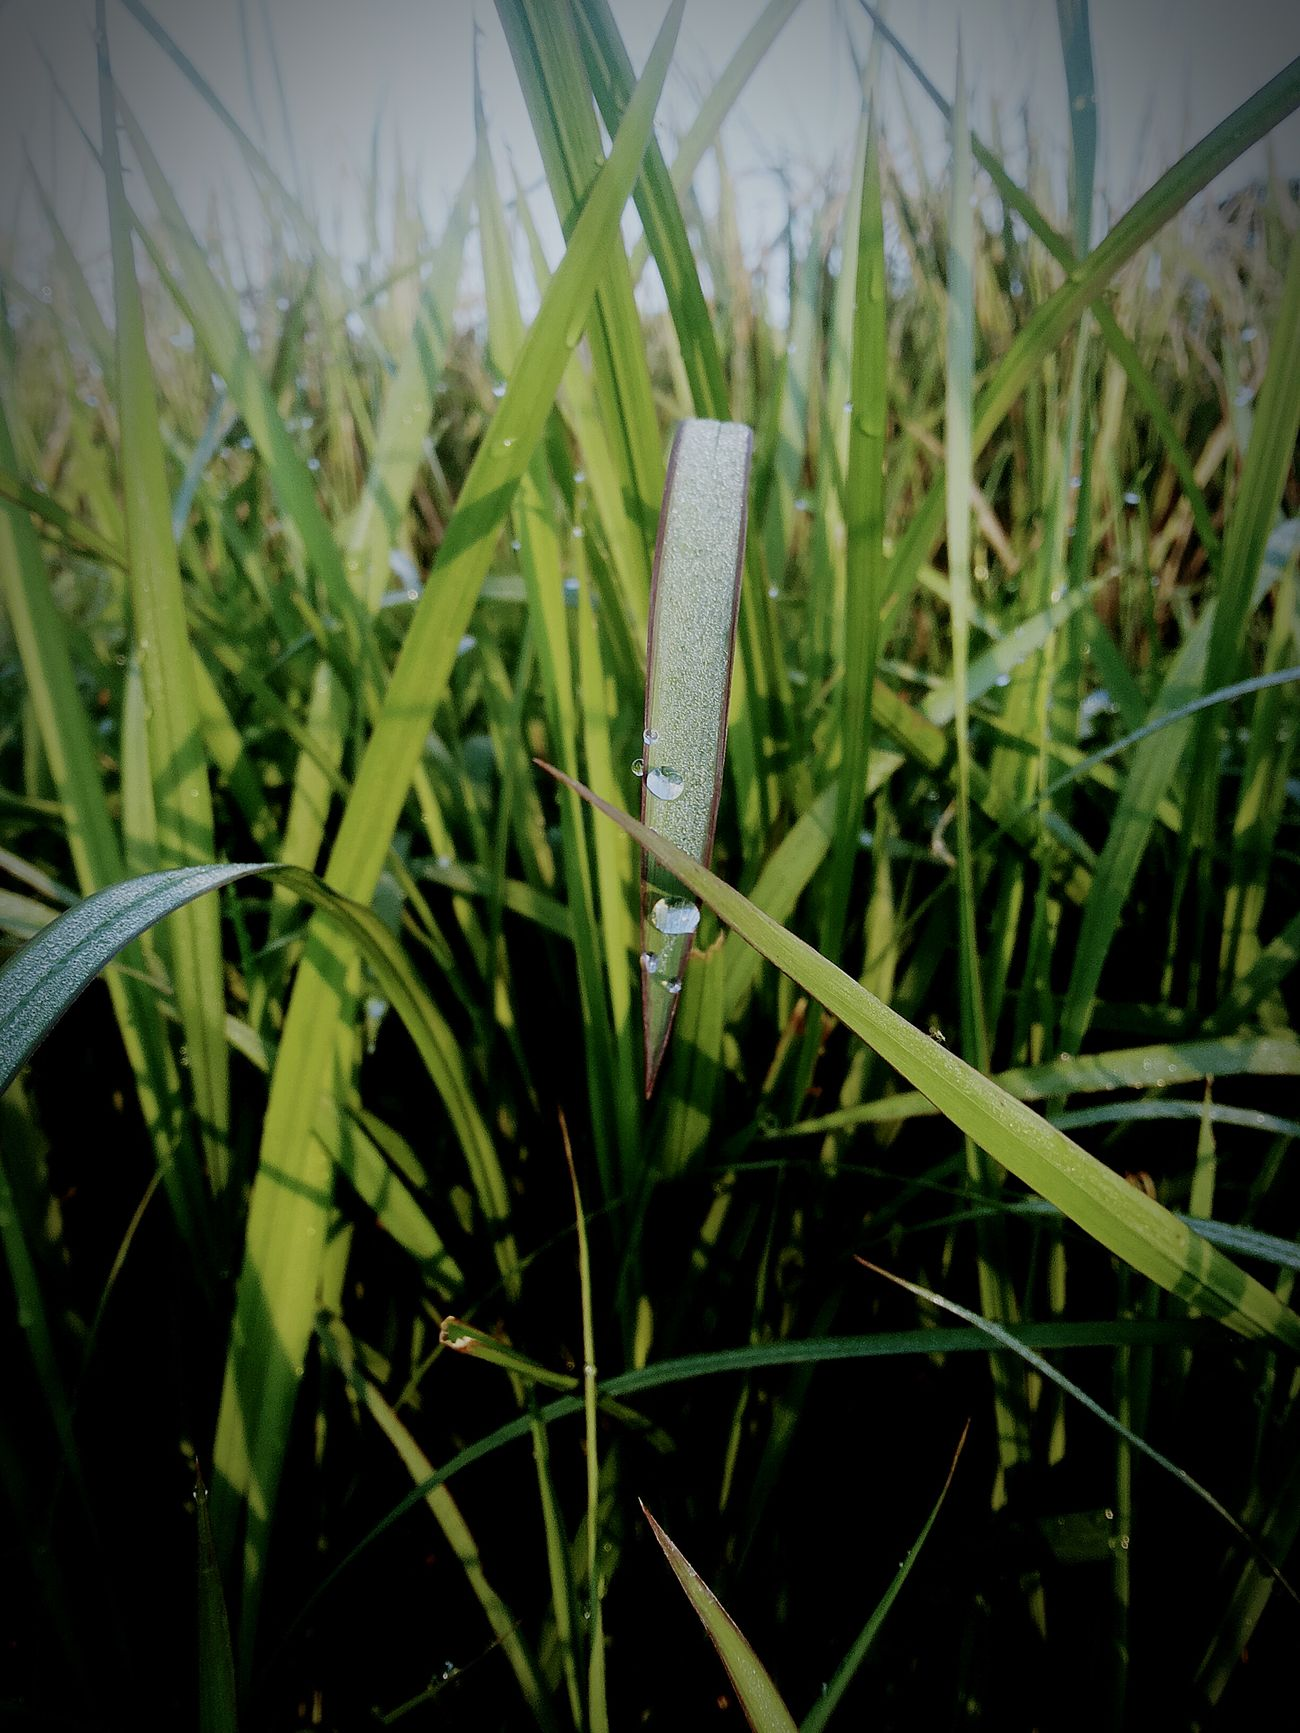 Grass Green Color Growth Beauty In Nature Tranquility Outdoors Freshness Dew Water Nature Wet Close-up Plant Growth Grass Green Color Plant Close-up Blade Of Grass Wet Drop Nature Dew Water Focus On Foreground